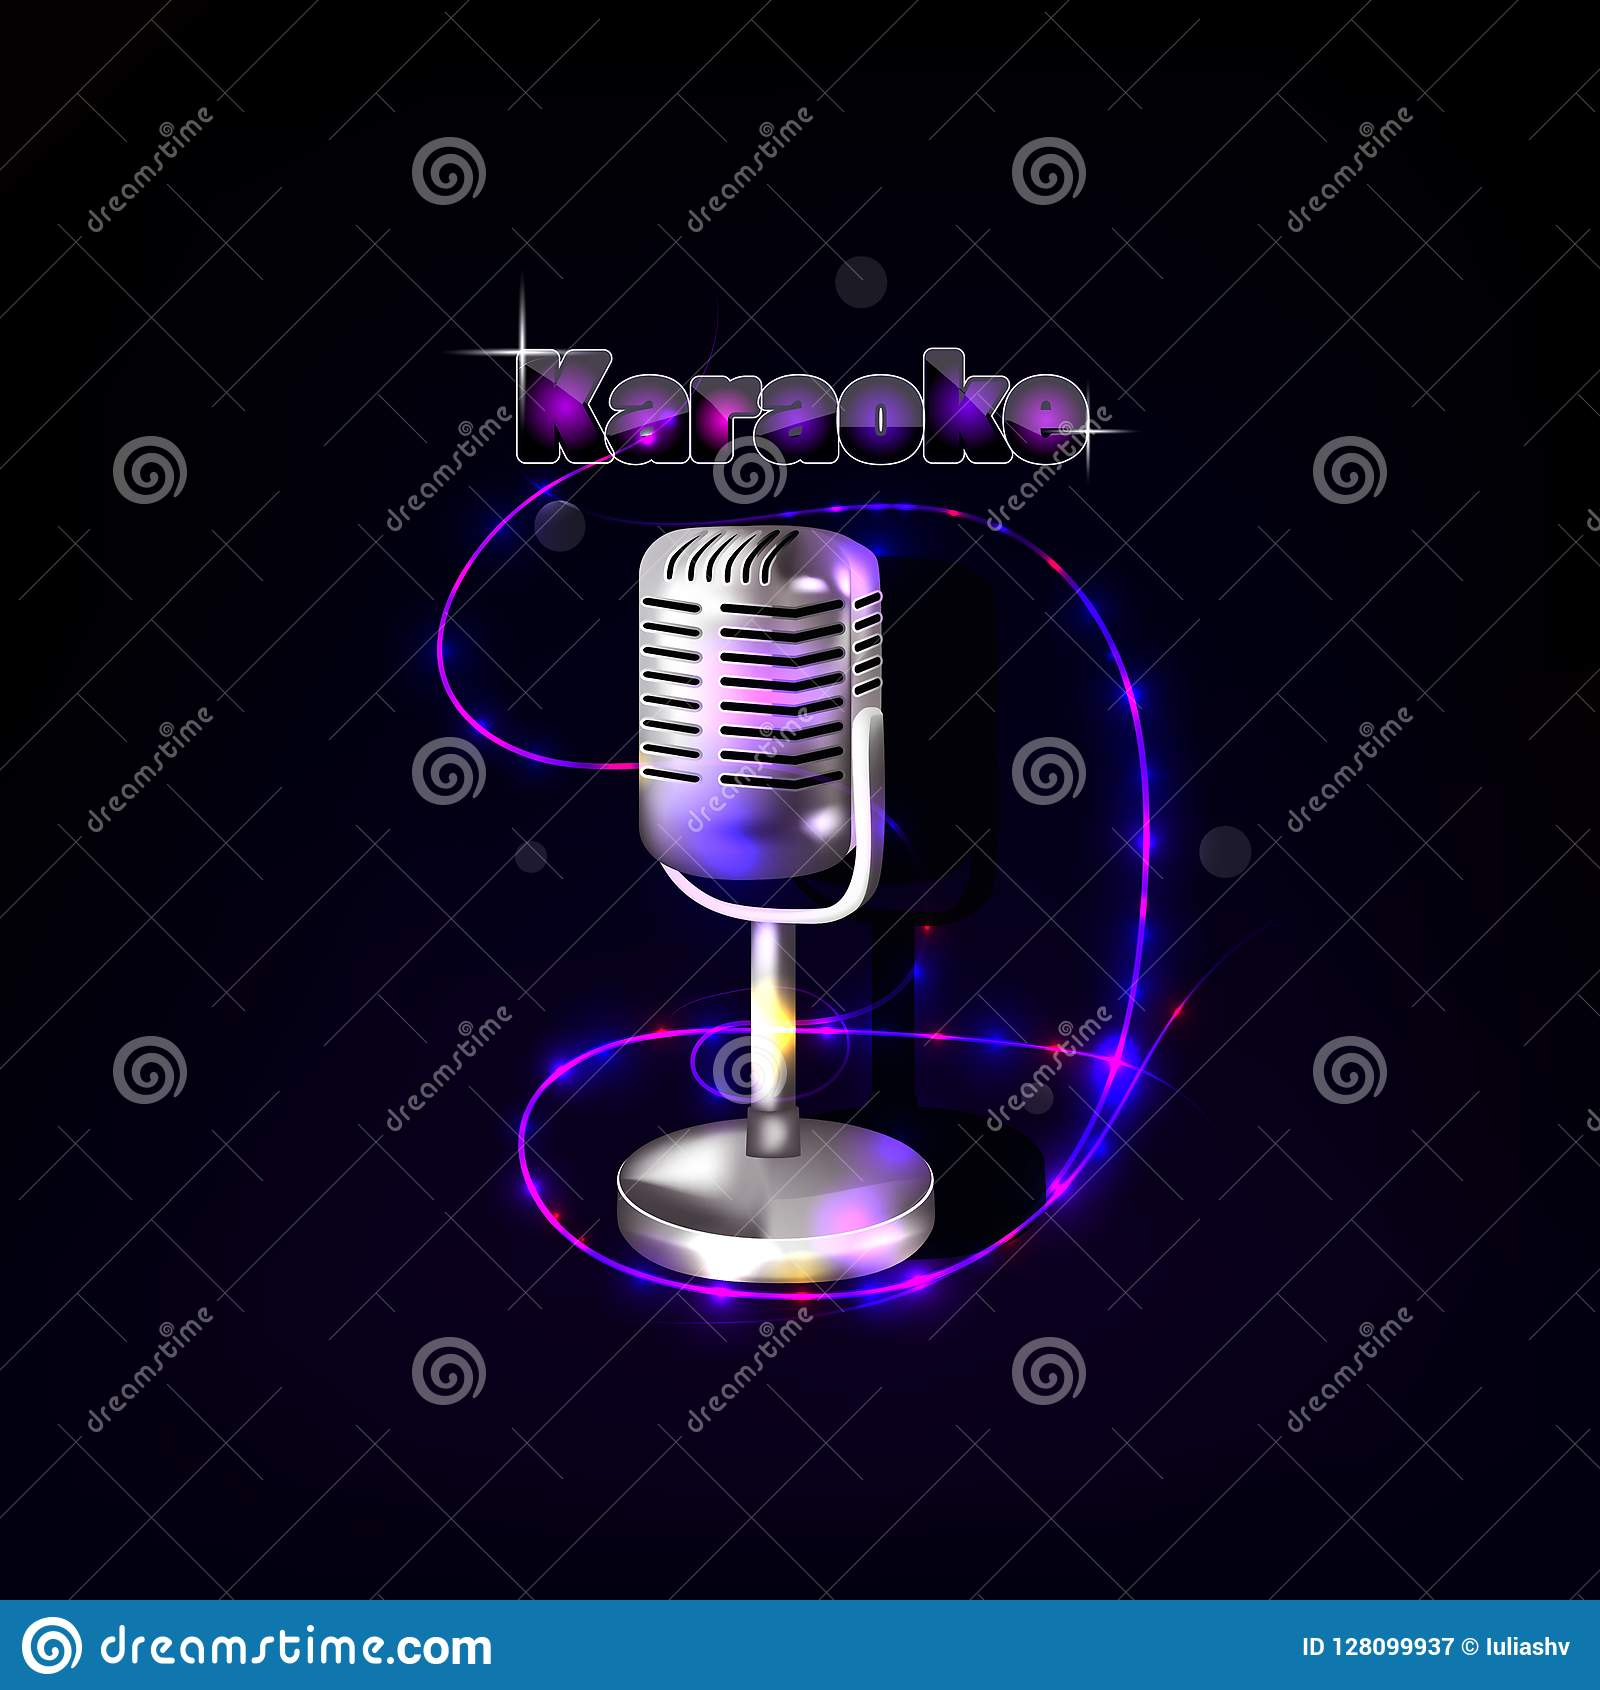 Vintage microphone on dark background.